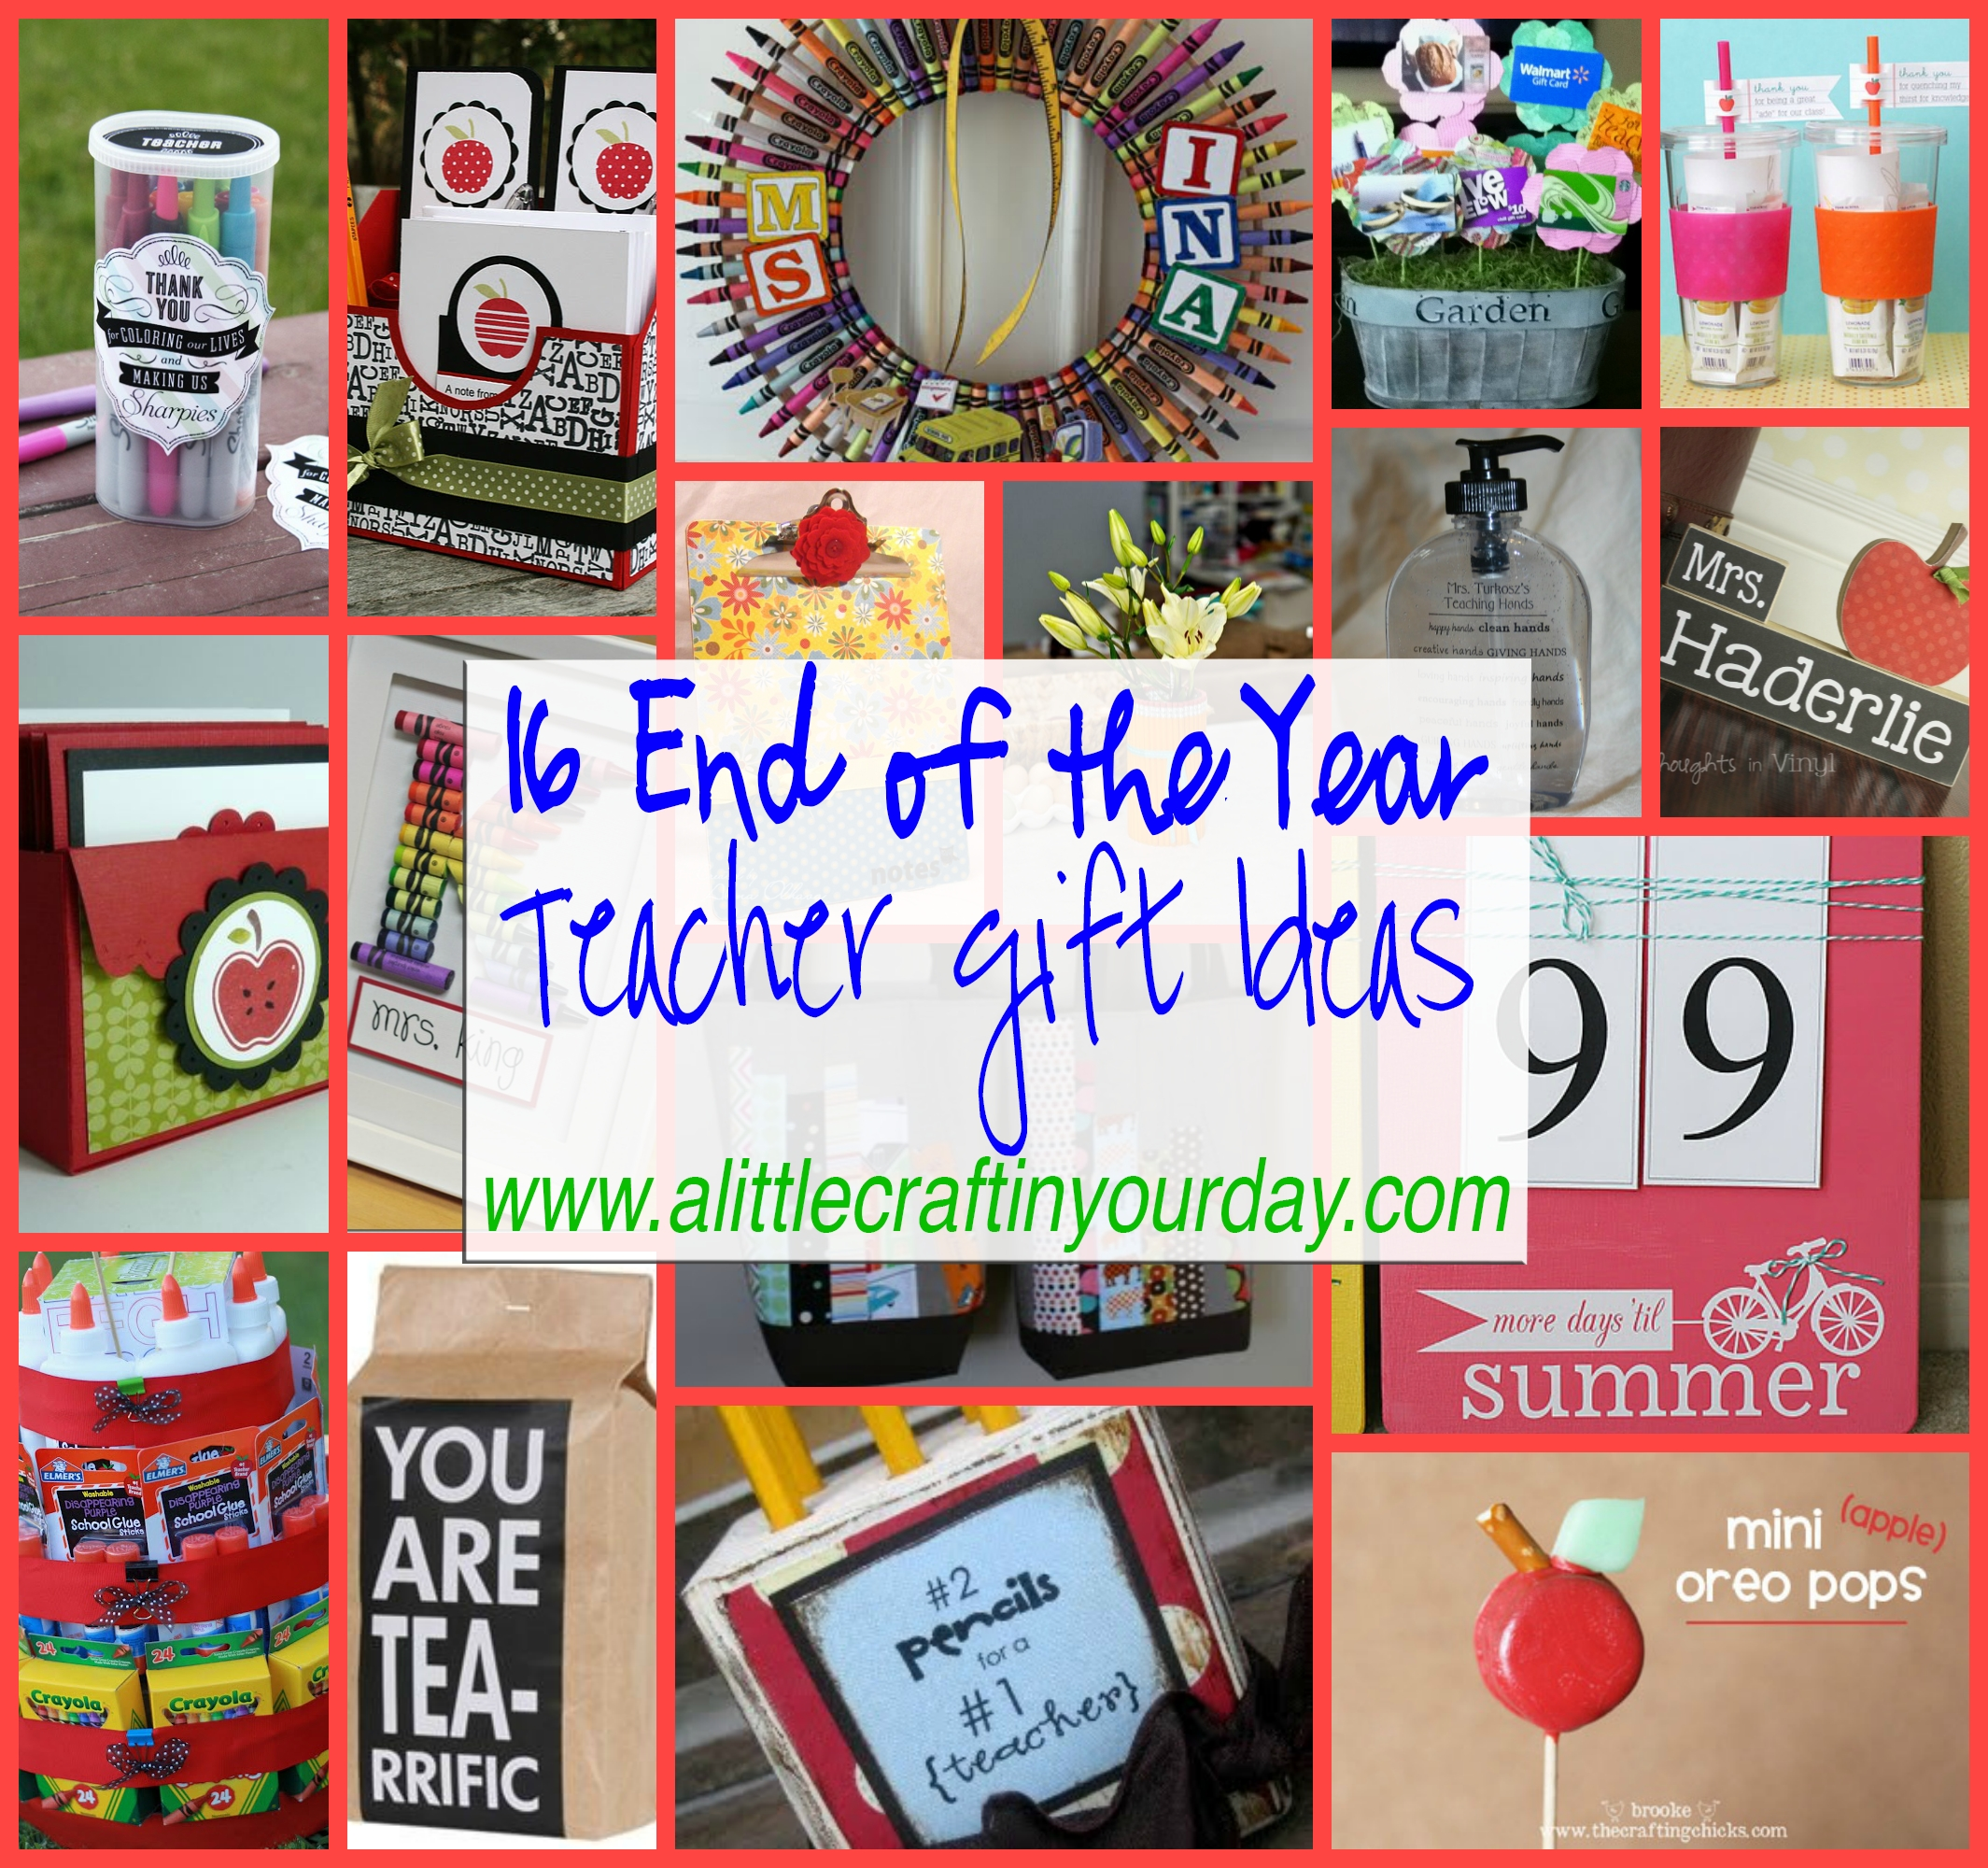 10 Nice End Of School Teacher Gift Ideas 16 end of the year teacher gift ideas a little craft in your day 7 2020